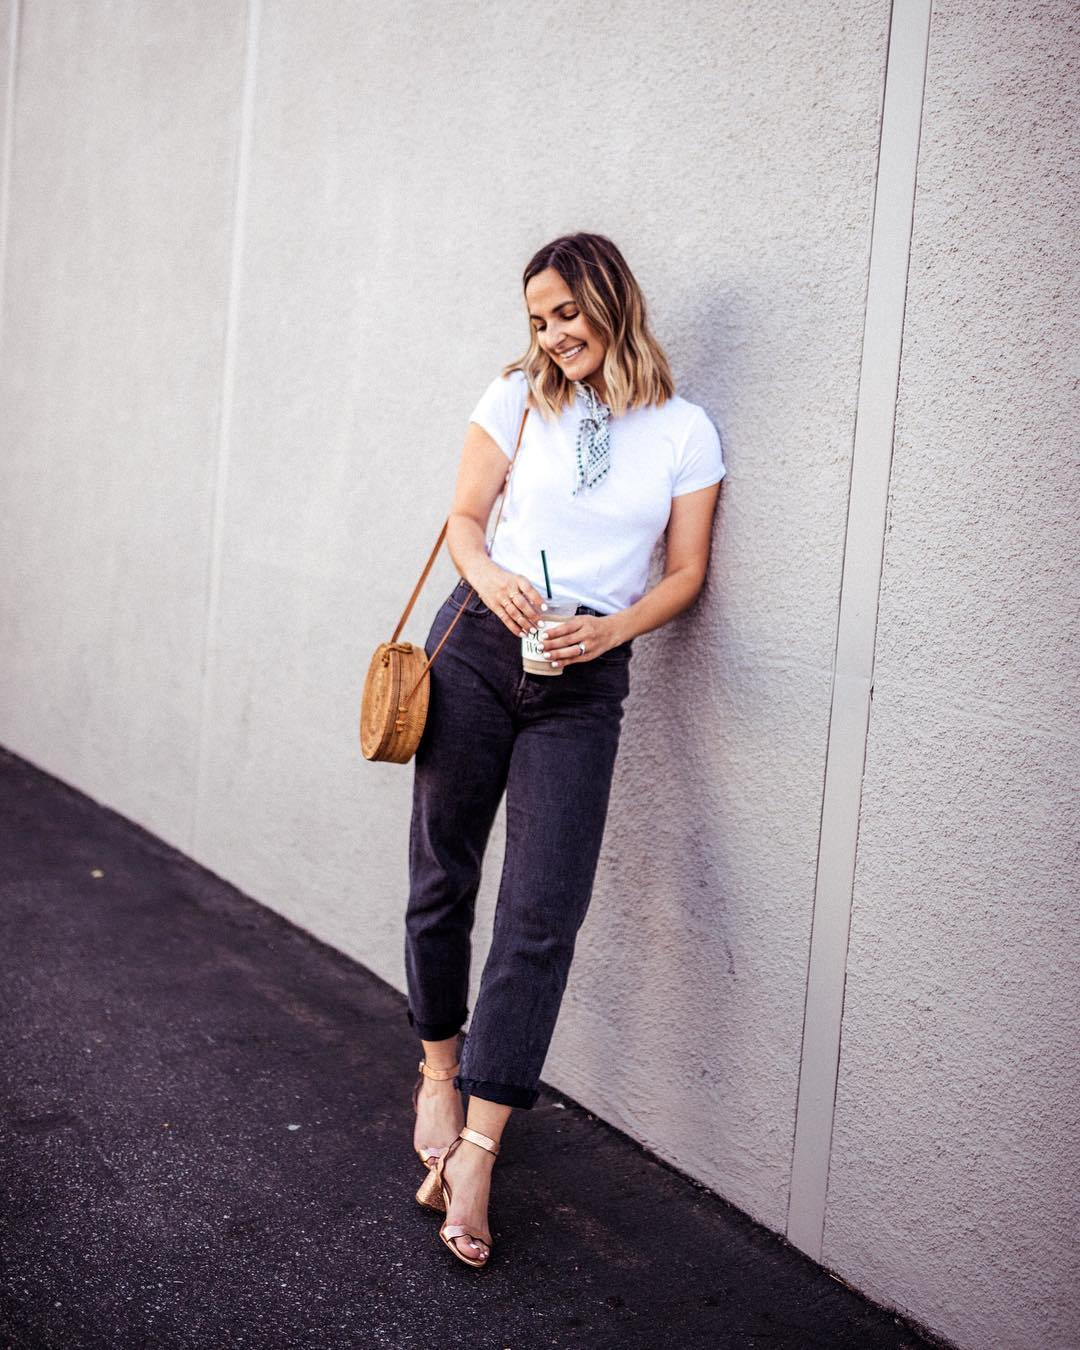 10 Lovable Cute Outfit Ideas For A Concert what to wear to a concert 8 outfit ideas to inspire you the